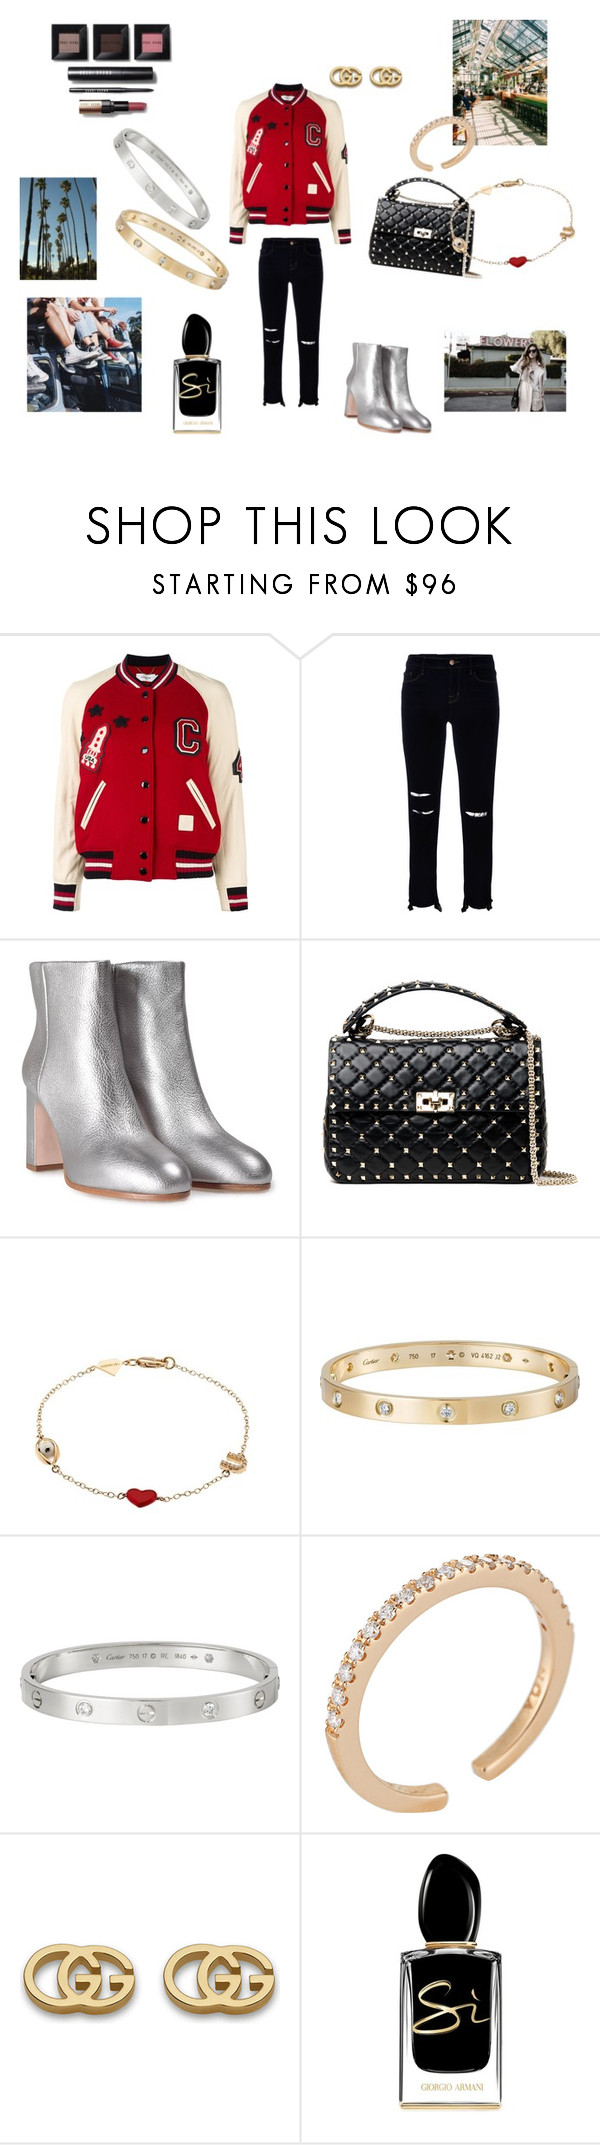 """Fabulous bomber"" by maria-chamourlidou ❤ liked on Polyvore featuring Coach, J Brand, Miu Miu, Valentino, Urban Outfitters, Alison Lou, Cartier, Noa, Gucci and Giorgio Armani"